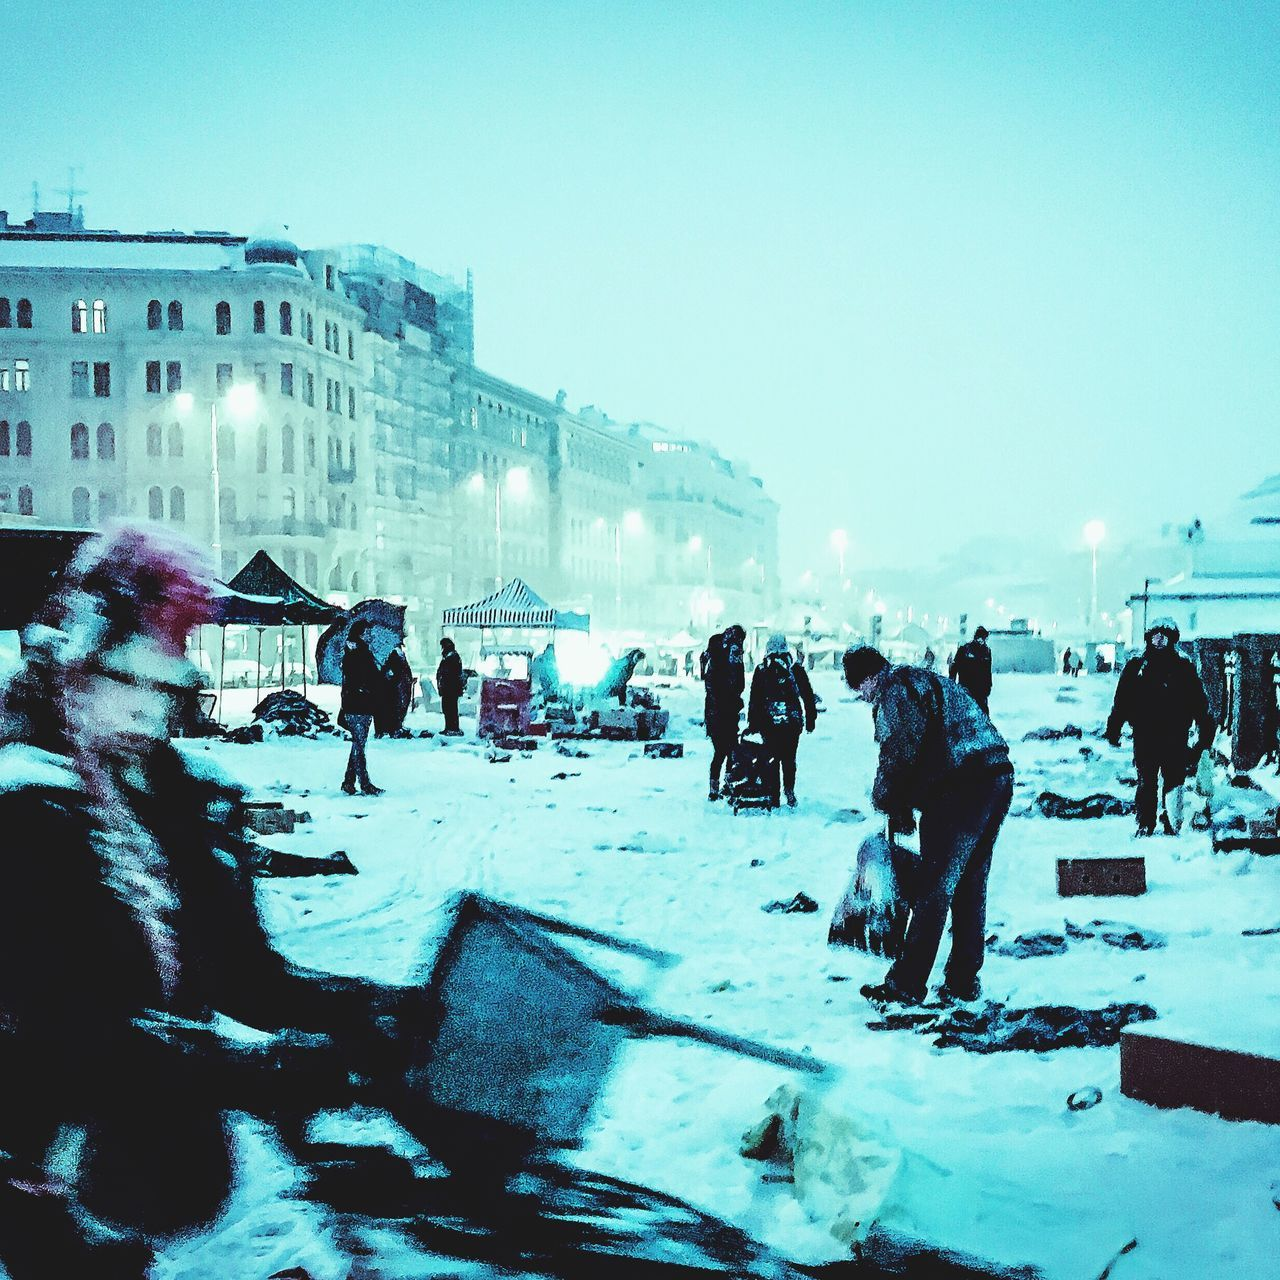 large group of people, real people, built structure, winter, architecture, leisure activity, cold temperature, snow, building exterior, lifestyles, men, women, clear sky, travel, outdoors, vacations, travel destinations, mixed age range, nature, sky, day, city, crowd, people, adult